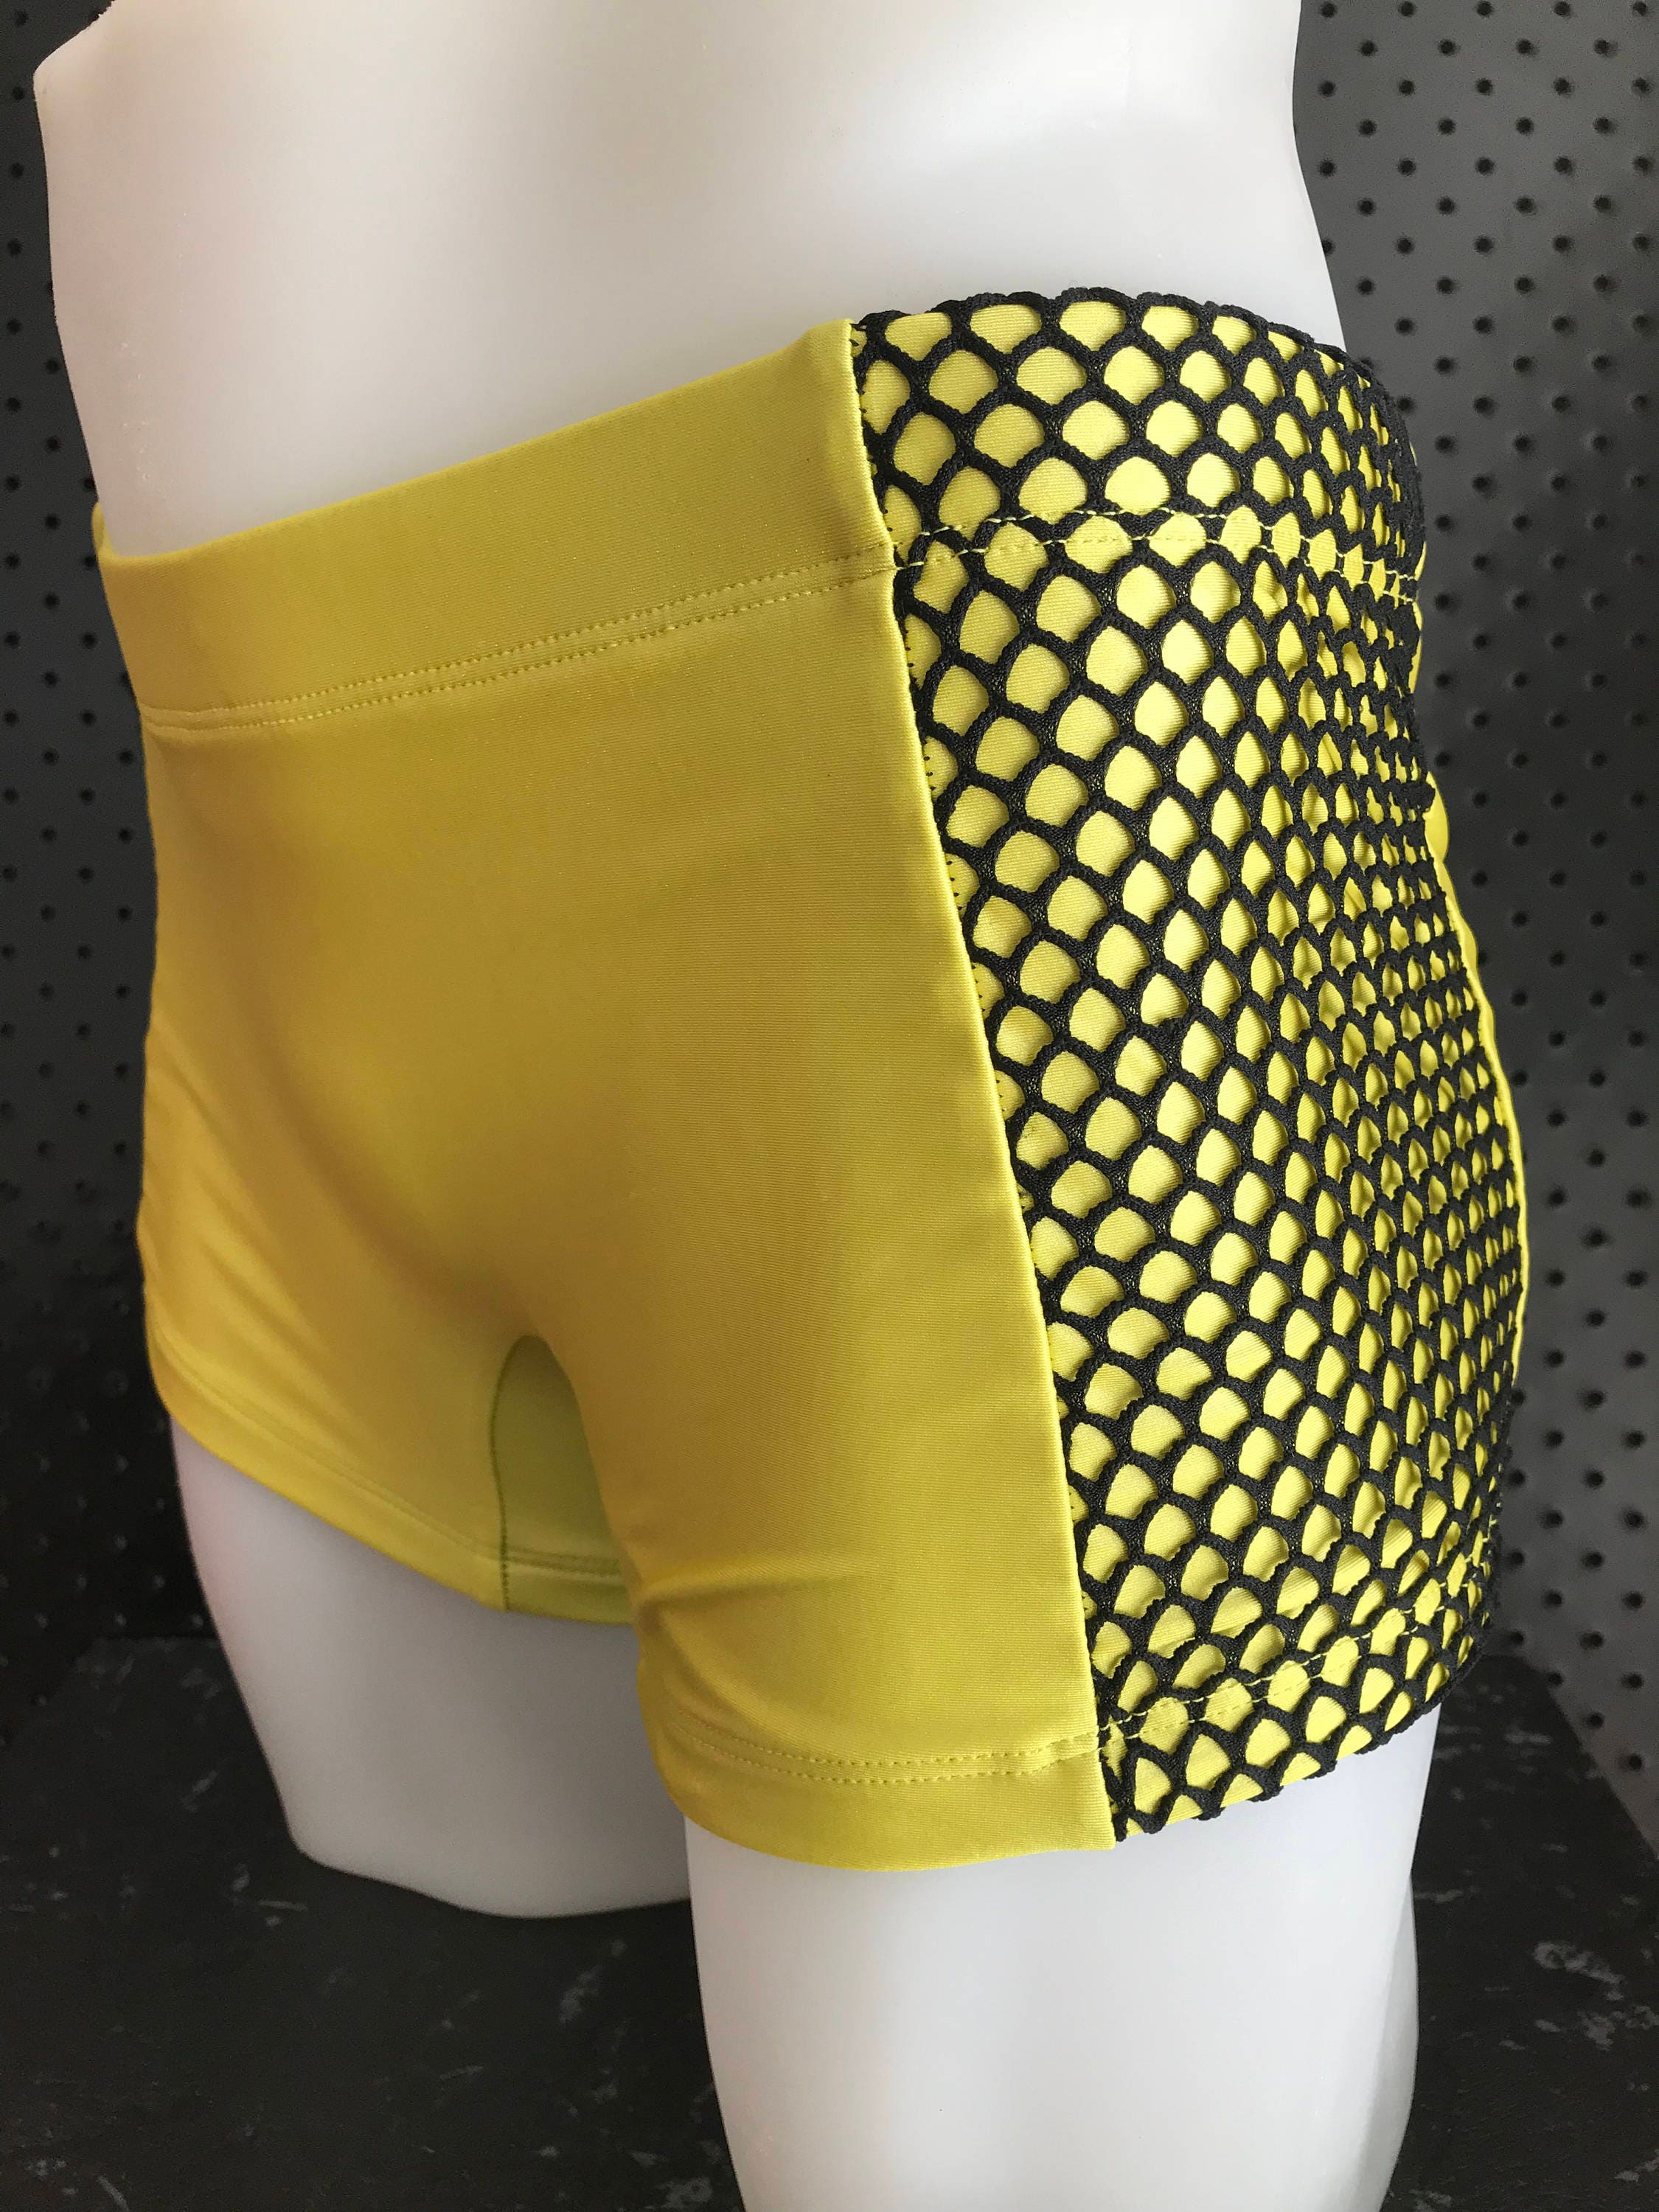 c609335210 INTRODUCING our Mens euro swim truck brand: ROGUEswim ** REBELyell/BLACK  fishnet mesh paneled swim short. gallery photo gallery photo gallery photo  ...